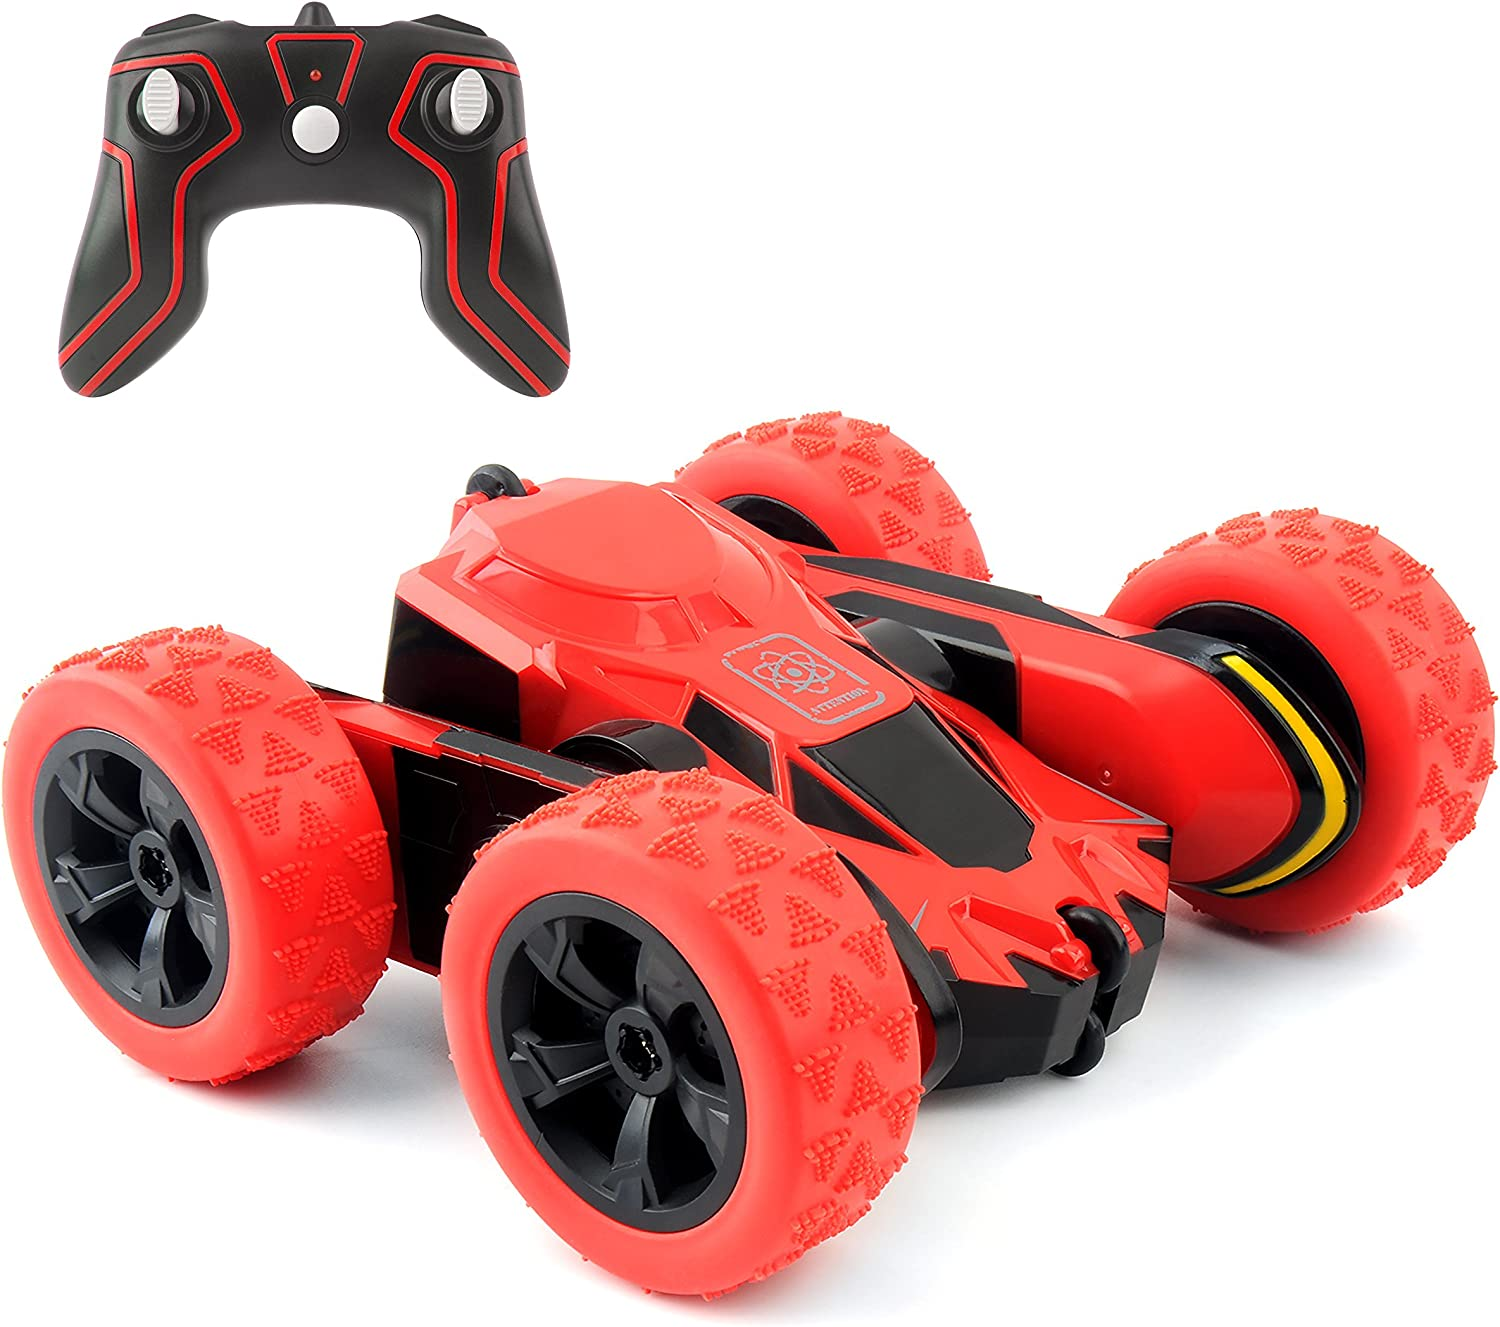 Mengen88 Remote Control Car,1 18 Short-Course Off Road Race RC Car, Truck 2.4Ghz Radio Controlled 4WD High Speed Crawler Rally Car for Kids or Adults, Toys of Speed